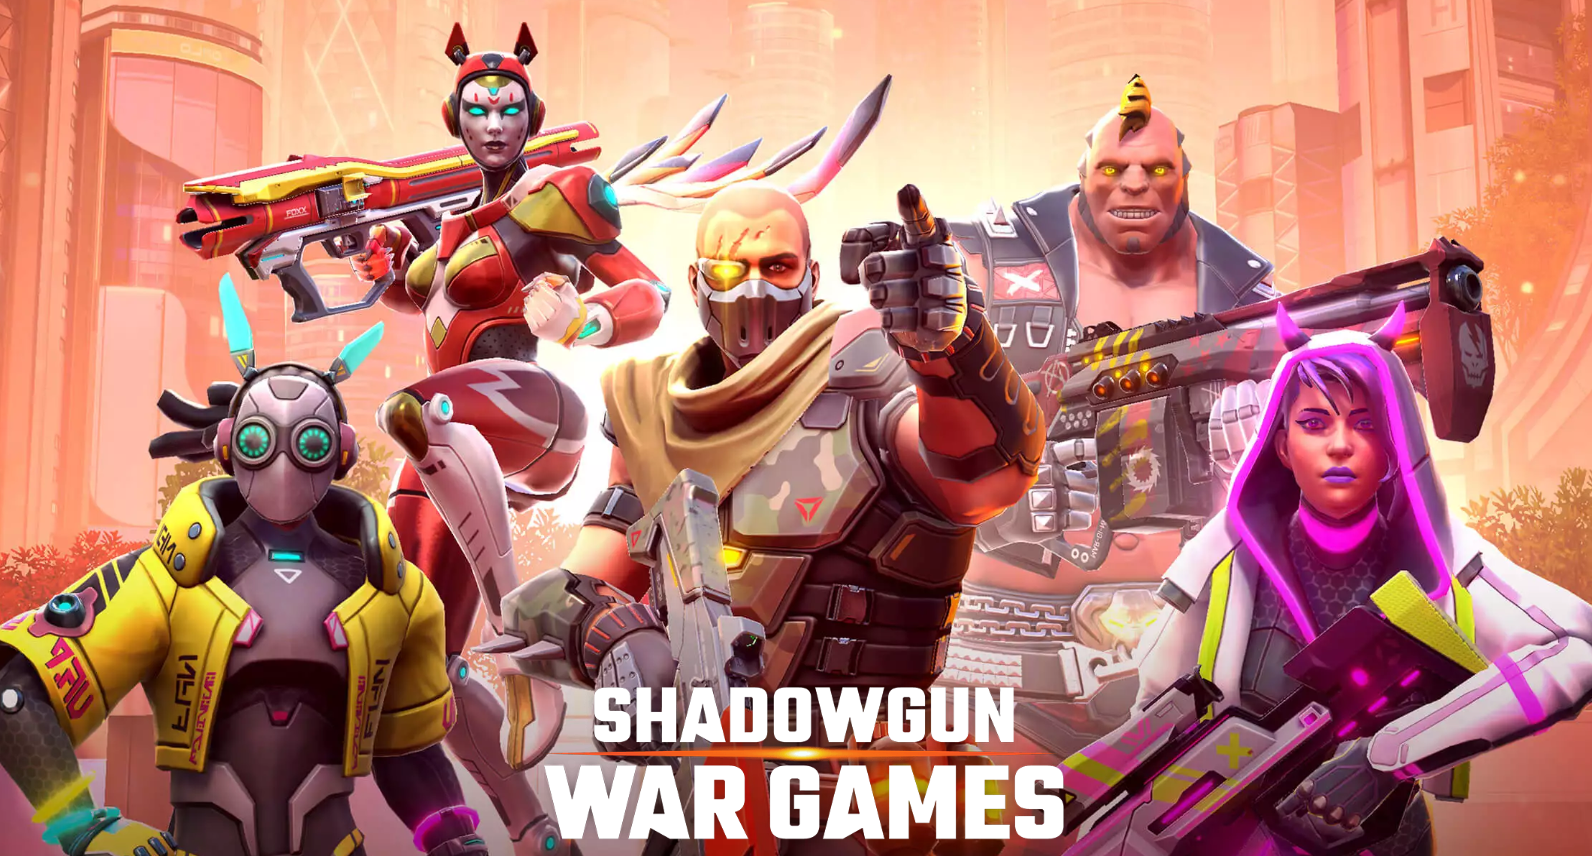 Shadowgun War Games: First Impressions - The Mobile Overwatch? 16